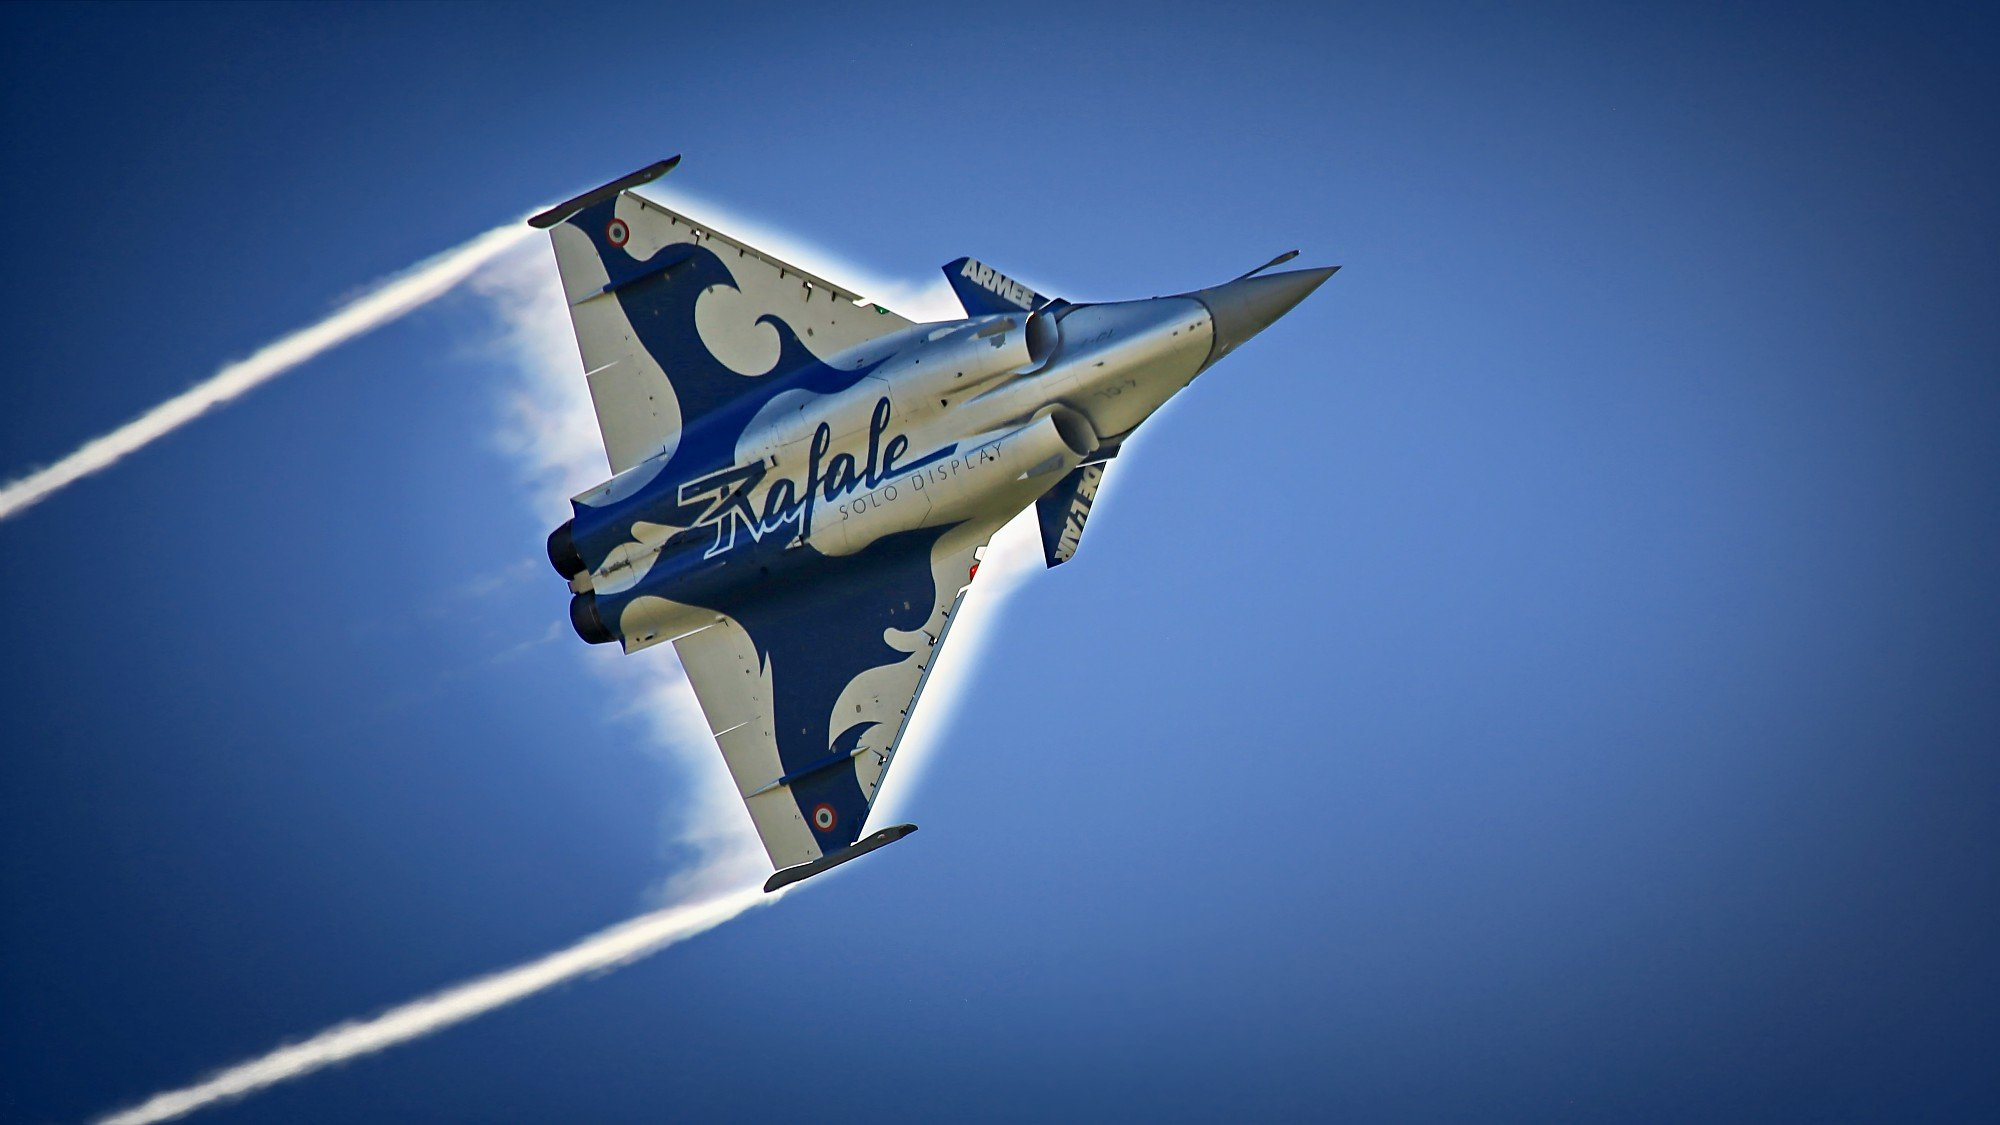 Dassault Aviation in tune with the Paris Air Show - Illustrate News